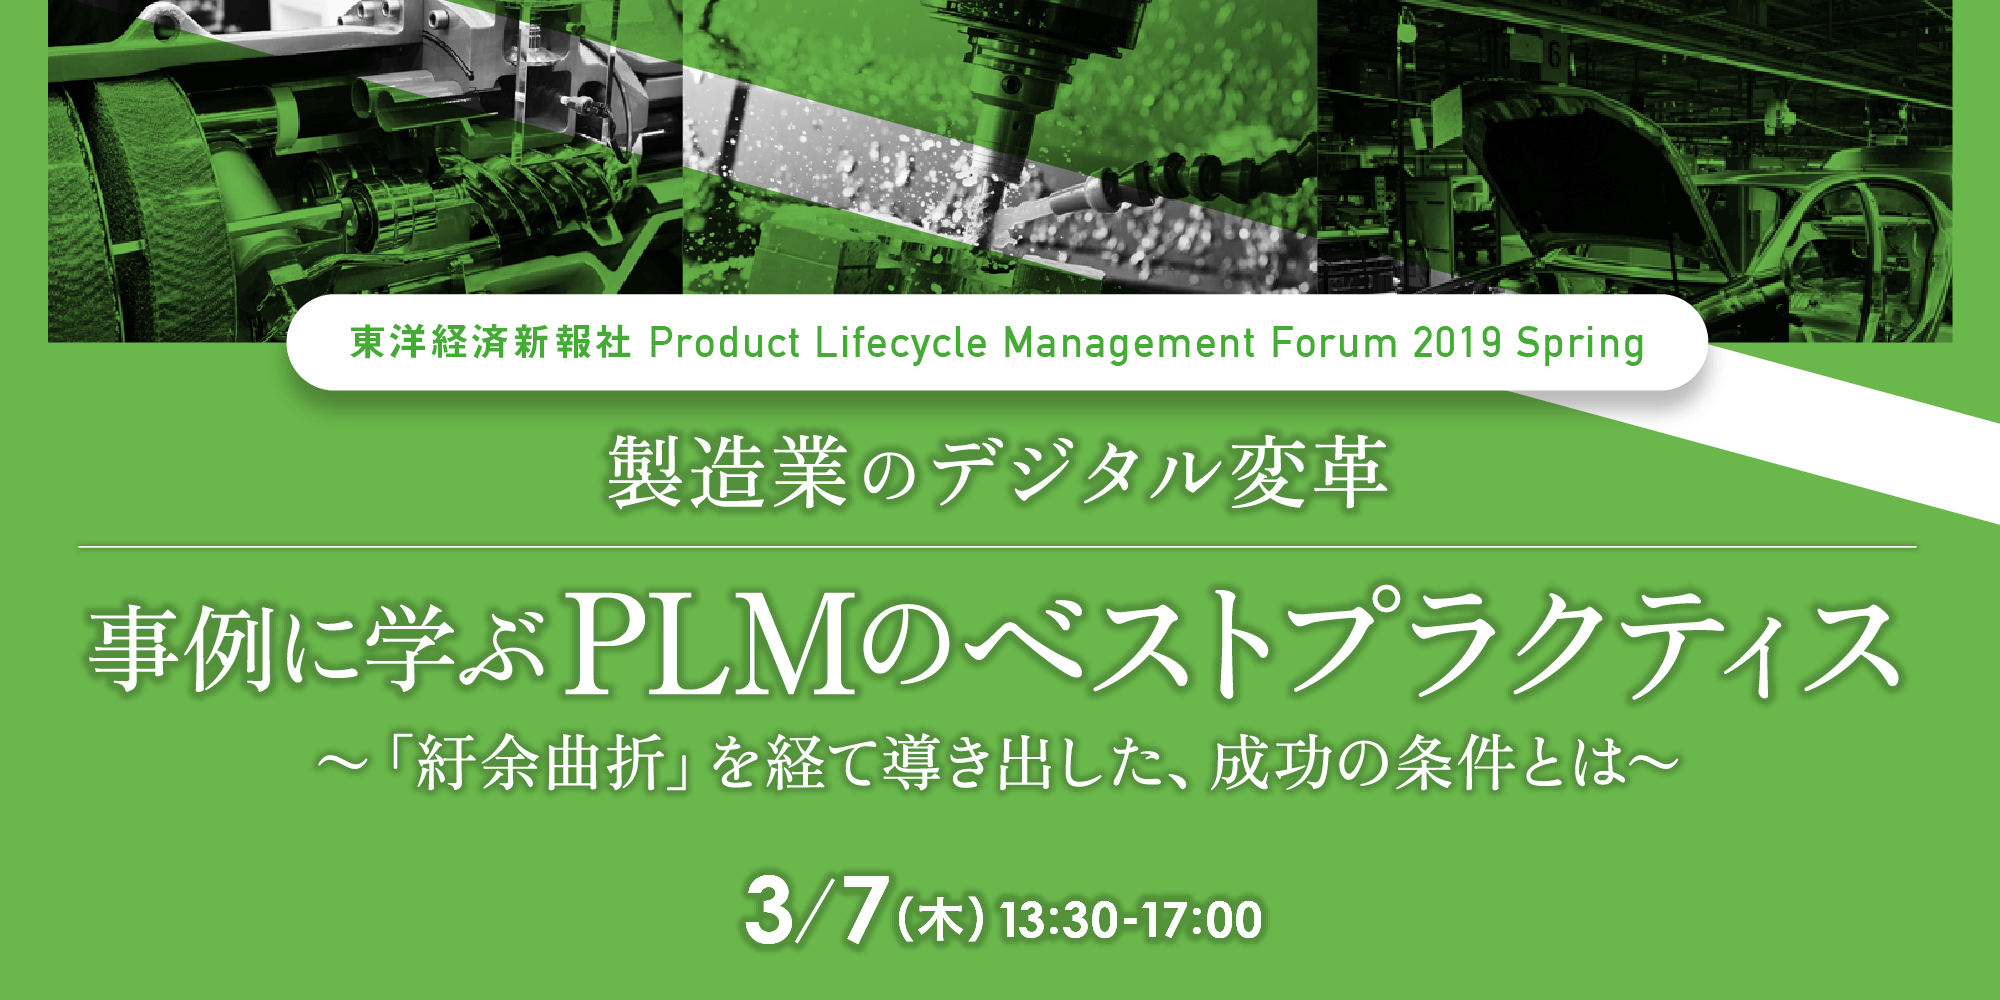 Product Lifecycle Management Forum 2019 Spring